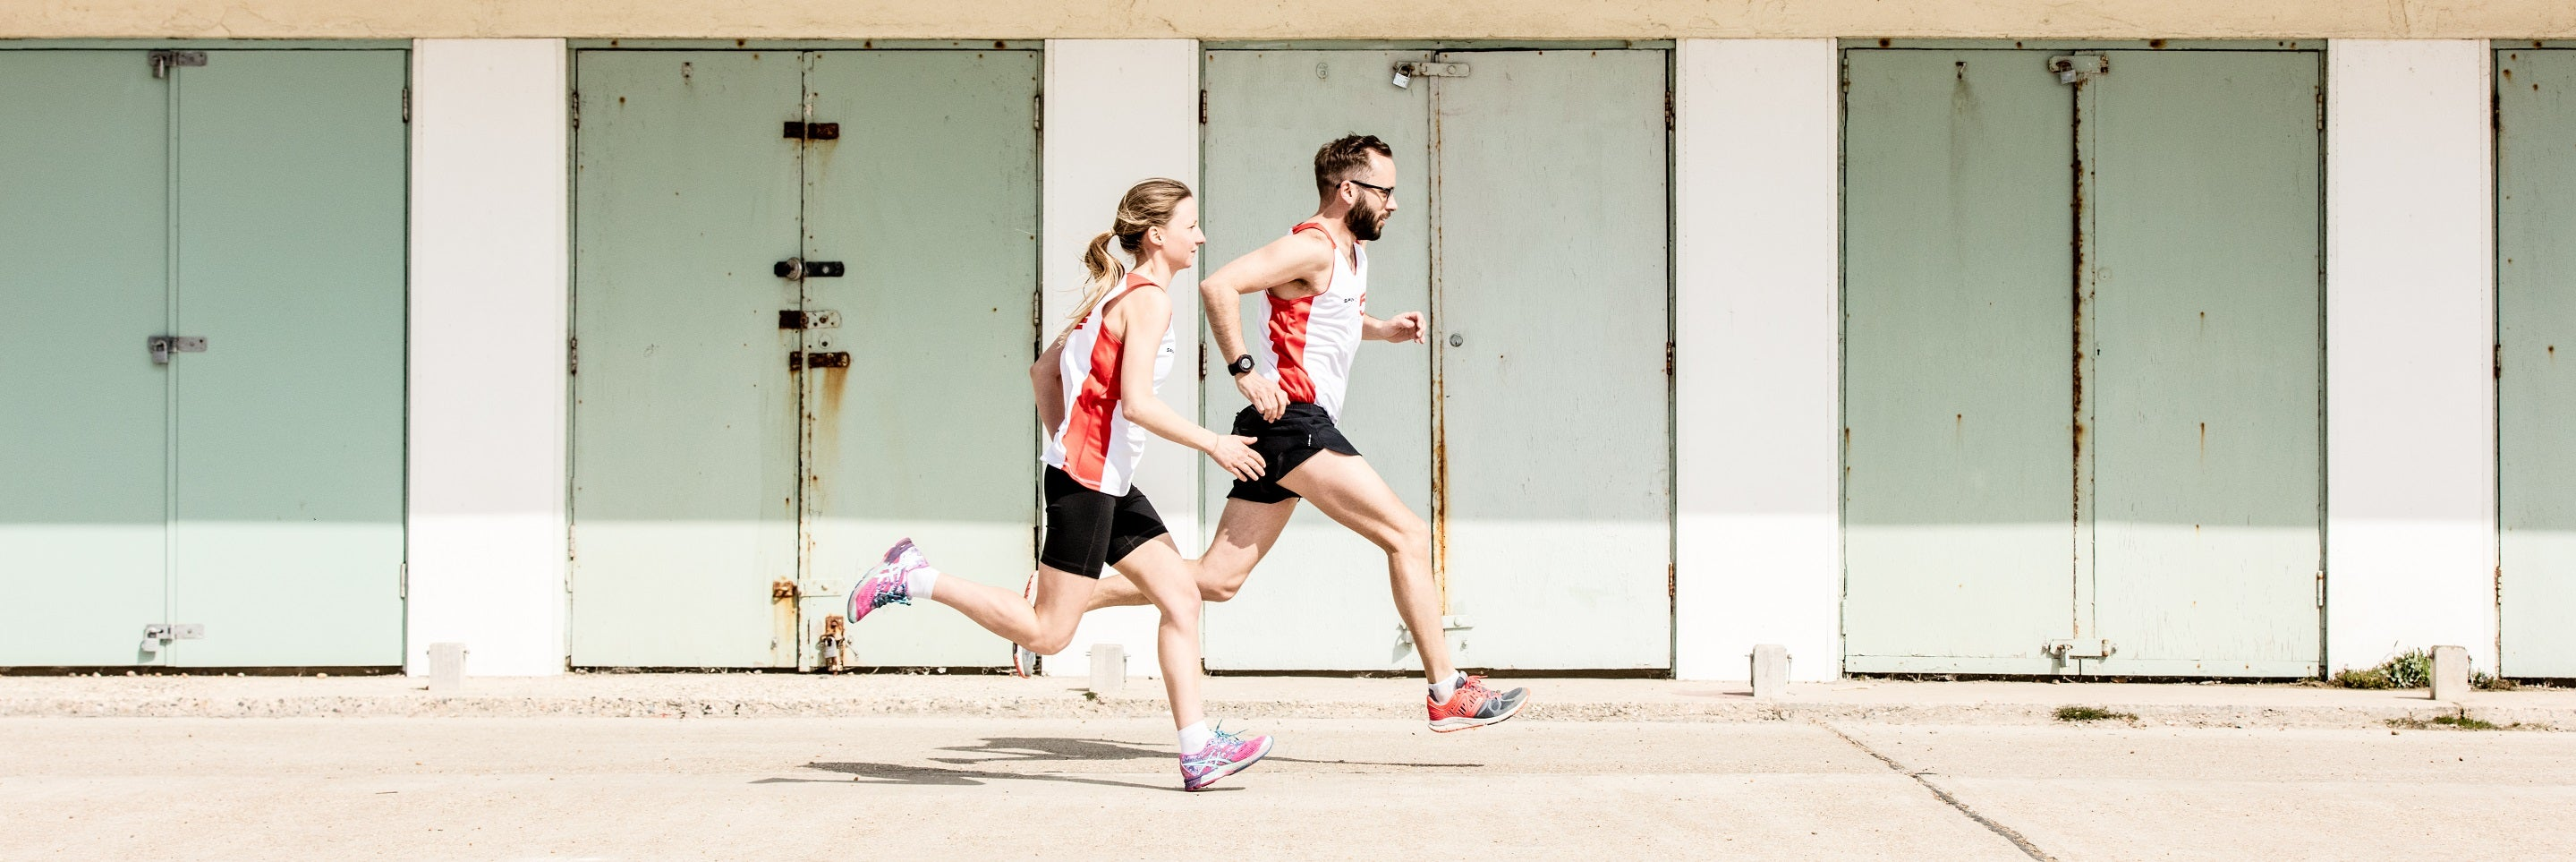 The Major Do's and Don'ts of Running a Marathon